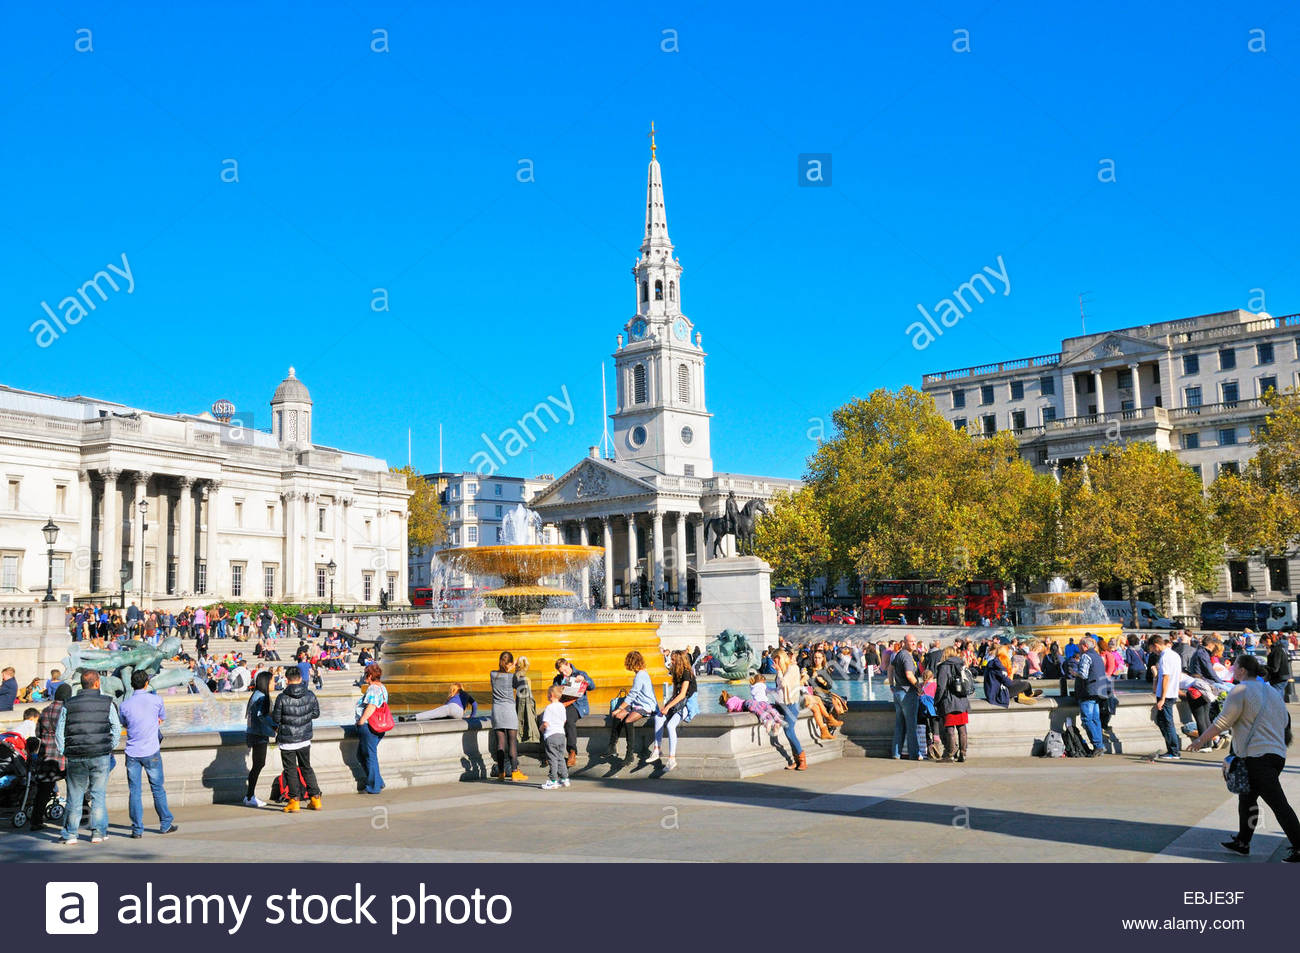 Trafalgar Square and St Martin-in-the-Fields church, London, England, UK - Stock Image